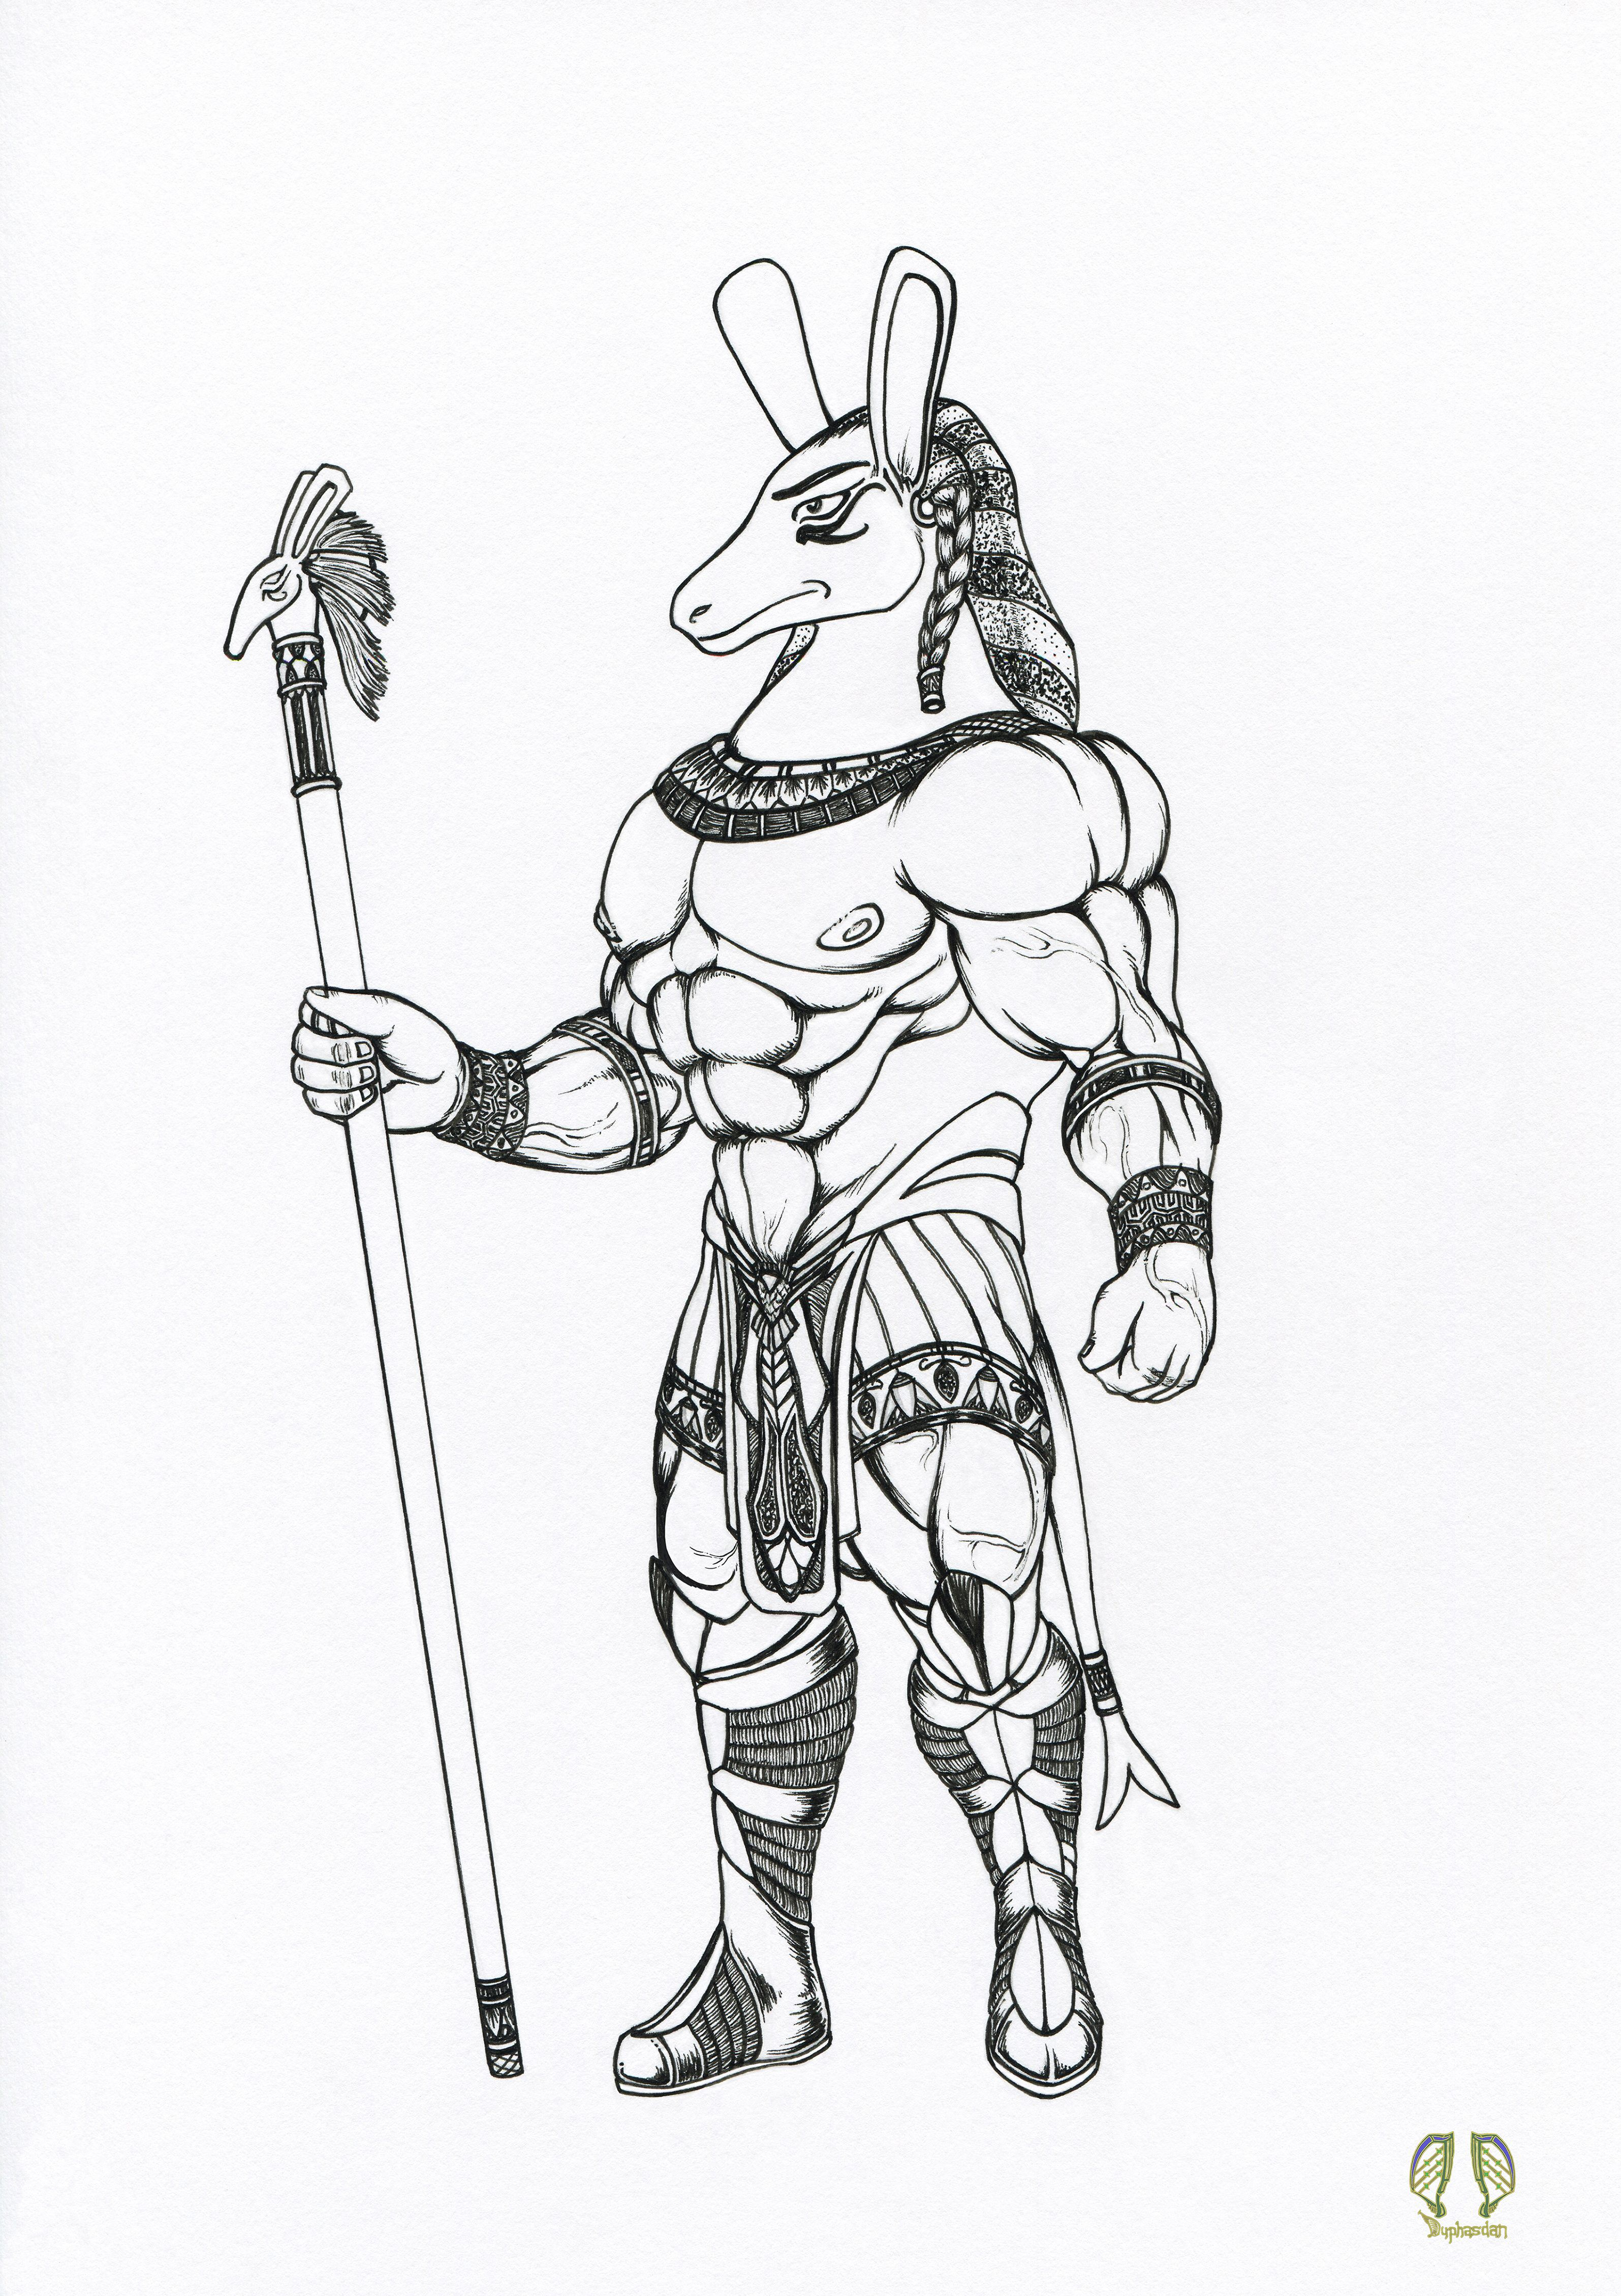 This Is An Ink Line Art Drawing Of The Egyptian God Set